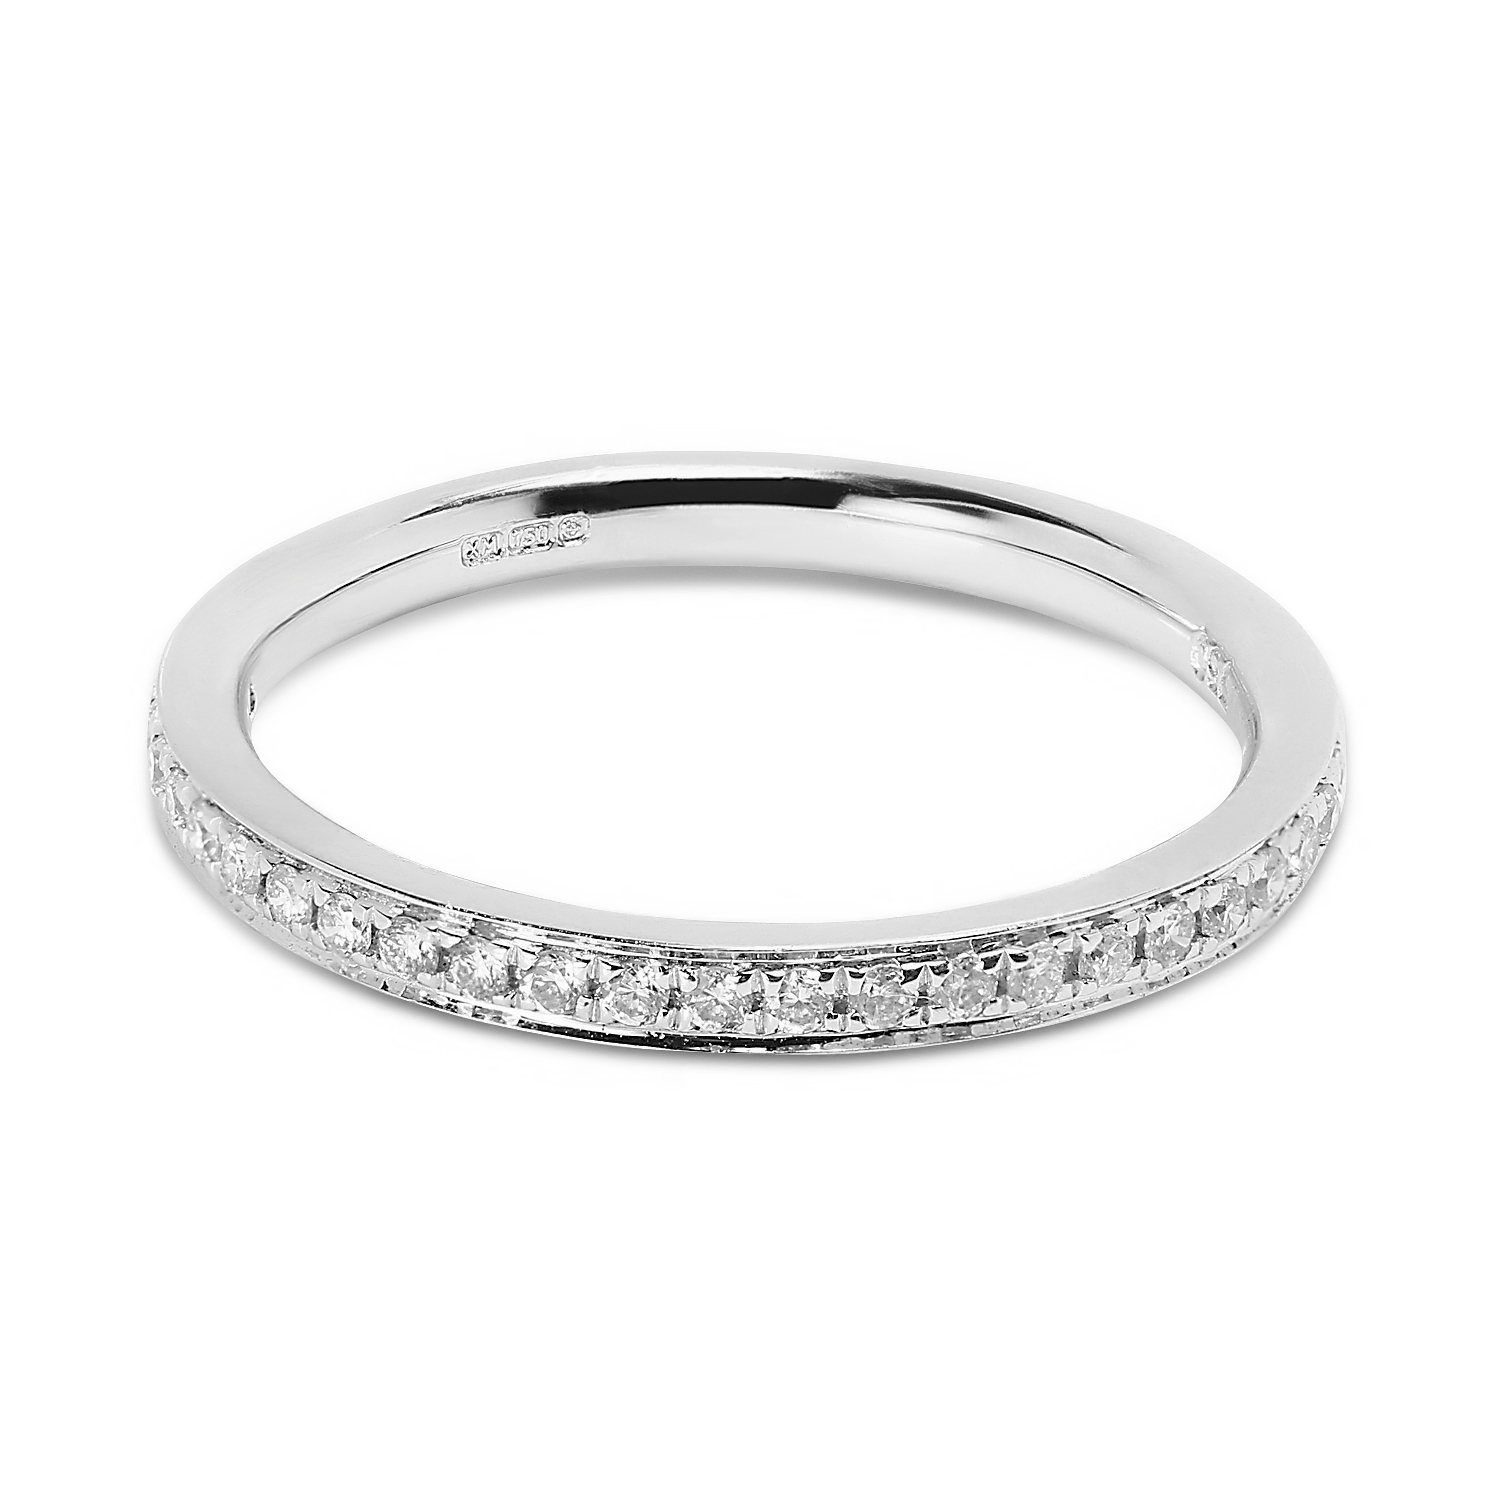 Classic 2.2mm Pave Setting Half Band Diamond Wedding Ring